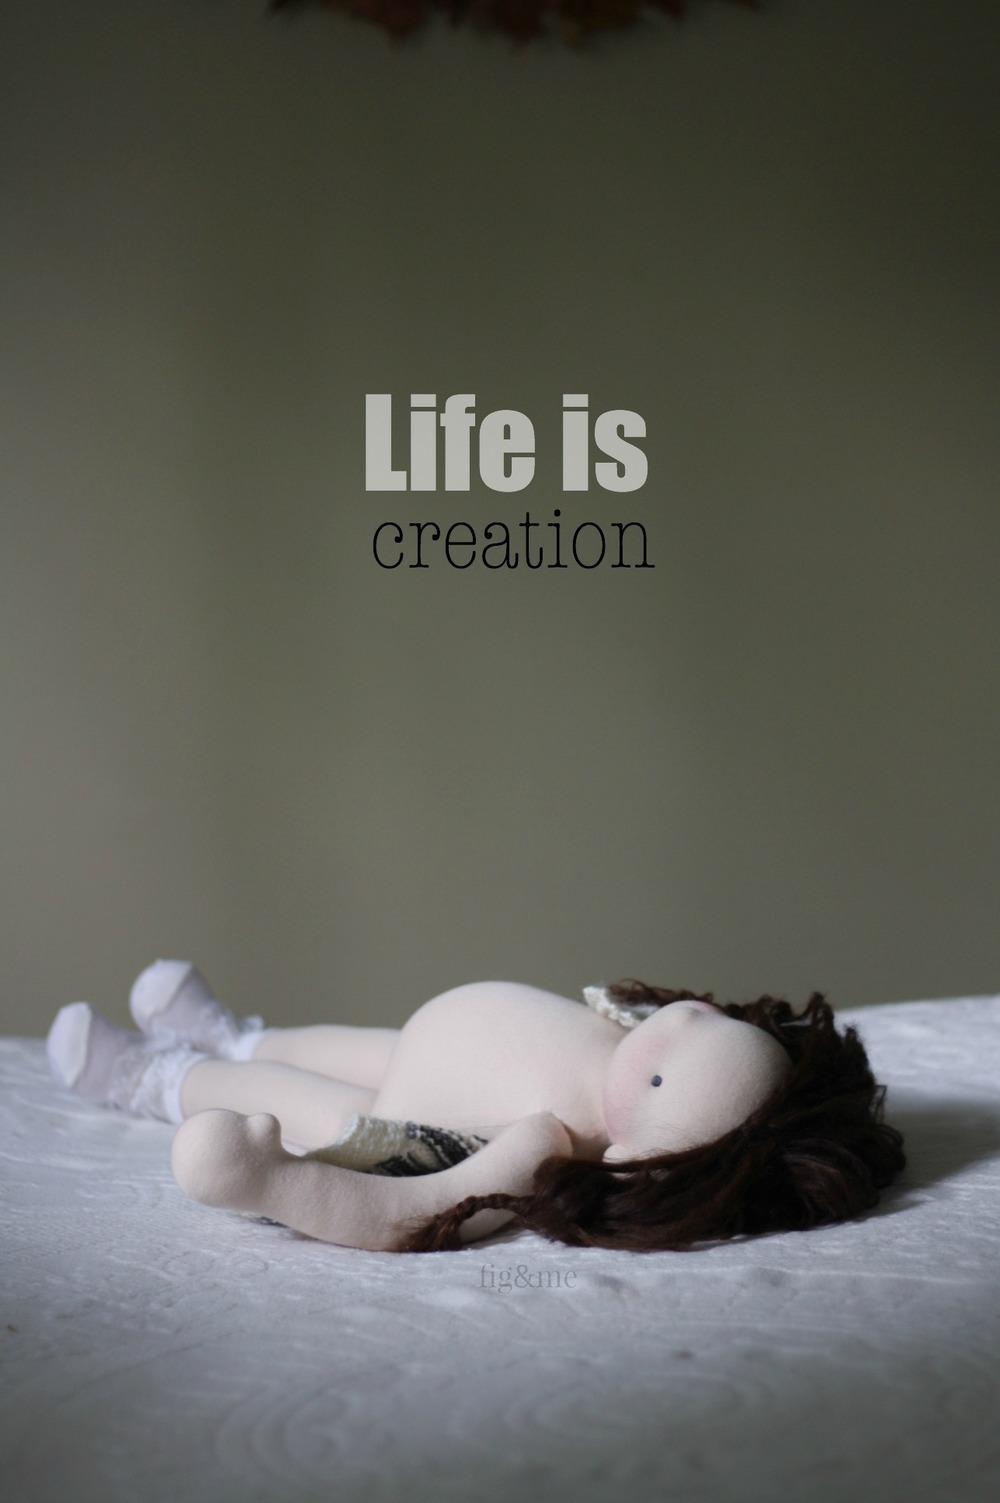 Life is creation, by Fig and Me.